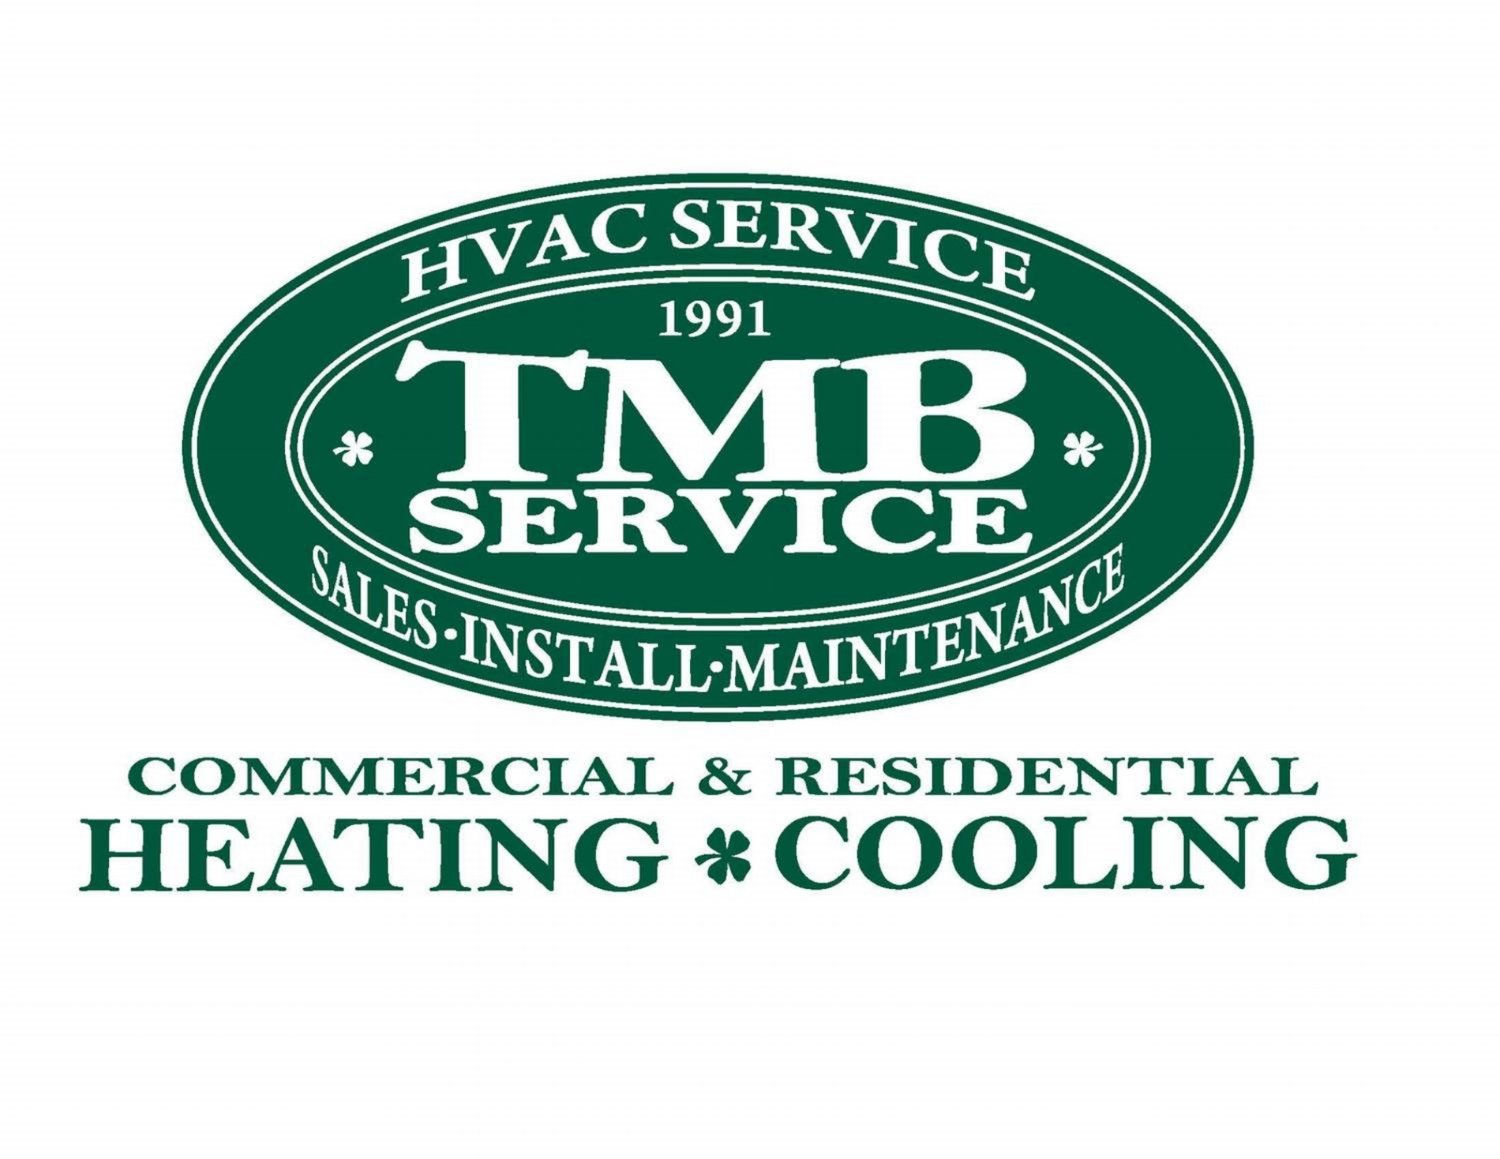 heating whole air about range to learn technicians offered our comfort the comforter and conditioning repair professional services throughout macon total of call today ac